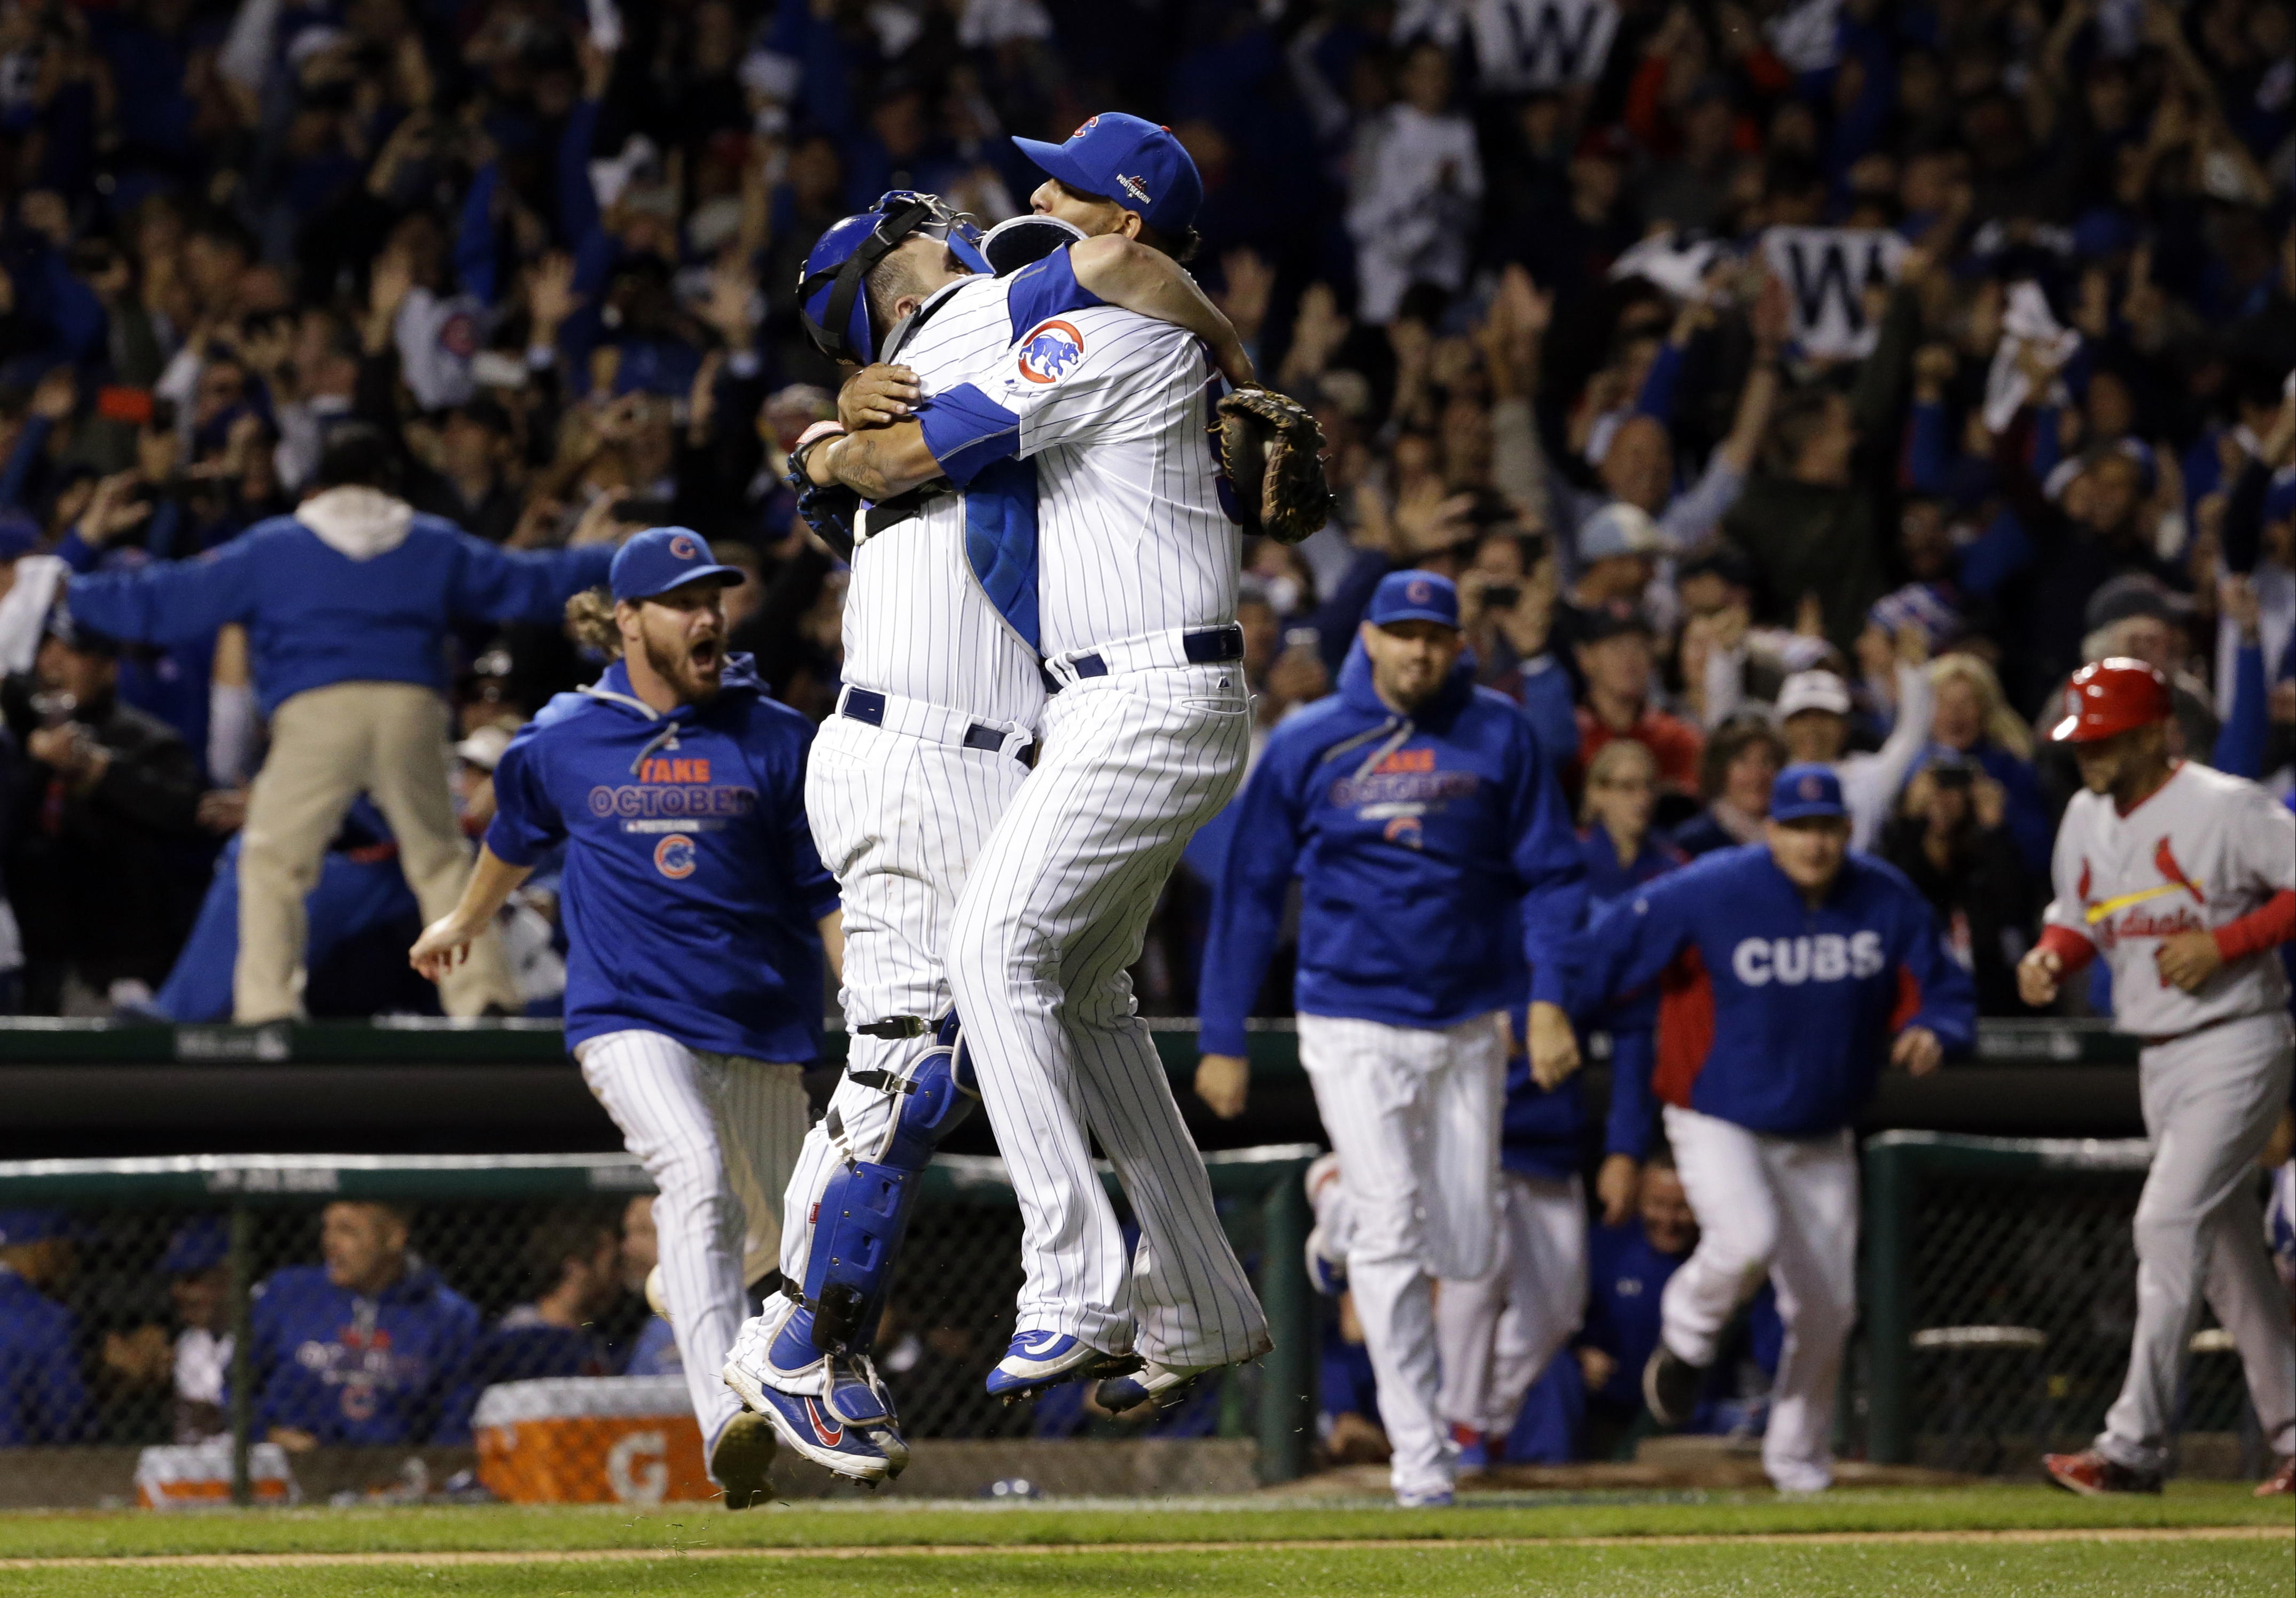 FILE - In this Oct. 13, 2015, file photo, Chicago Cubs catcher Miguel Montero (47) and relief pitcher Hector Rondon (56) celebrate after winning Game 4 in baseball's National League Division Series in Chicago. And while we hate draining the suspense from